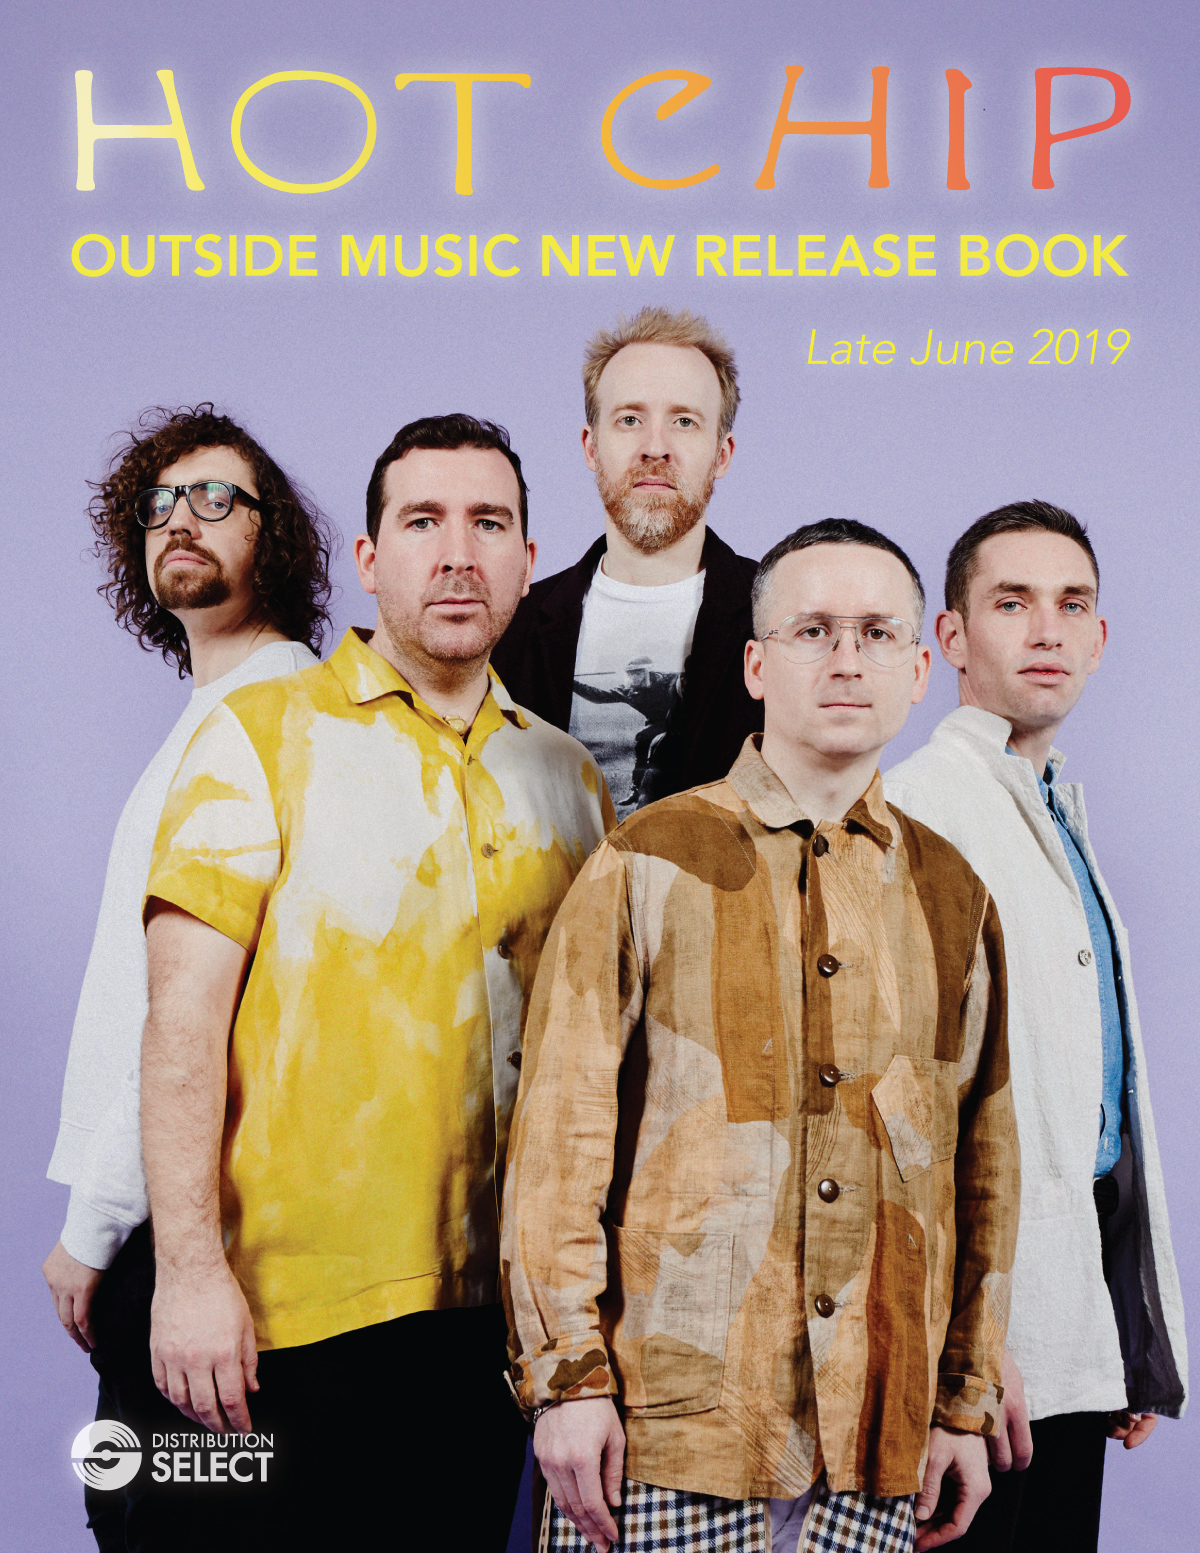 Outside Music New Release Book: Late June 2019 - To view online, click the book icon.To save the book to your computer, right click save as…LATE JUNE 2019 ORDER FORM